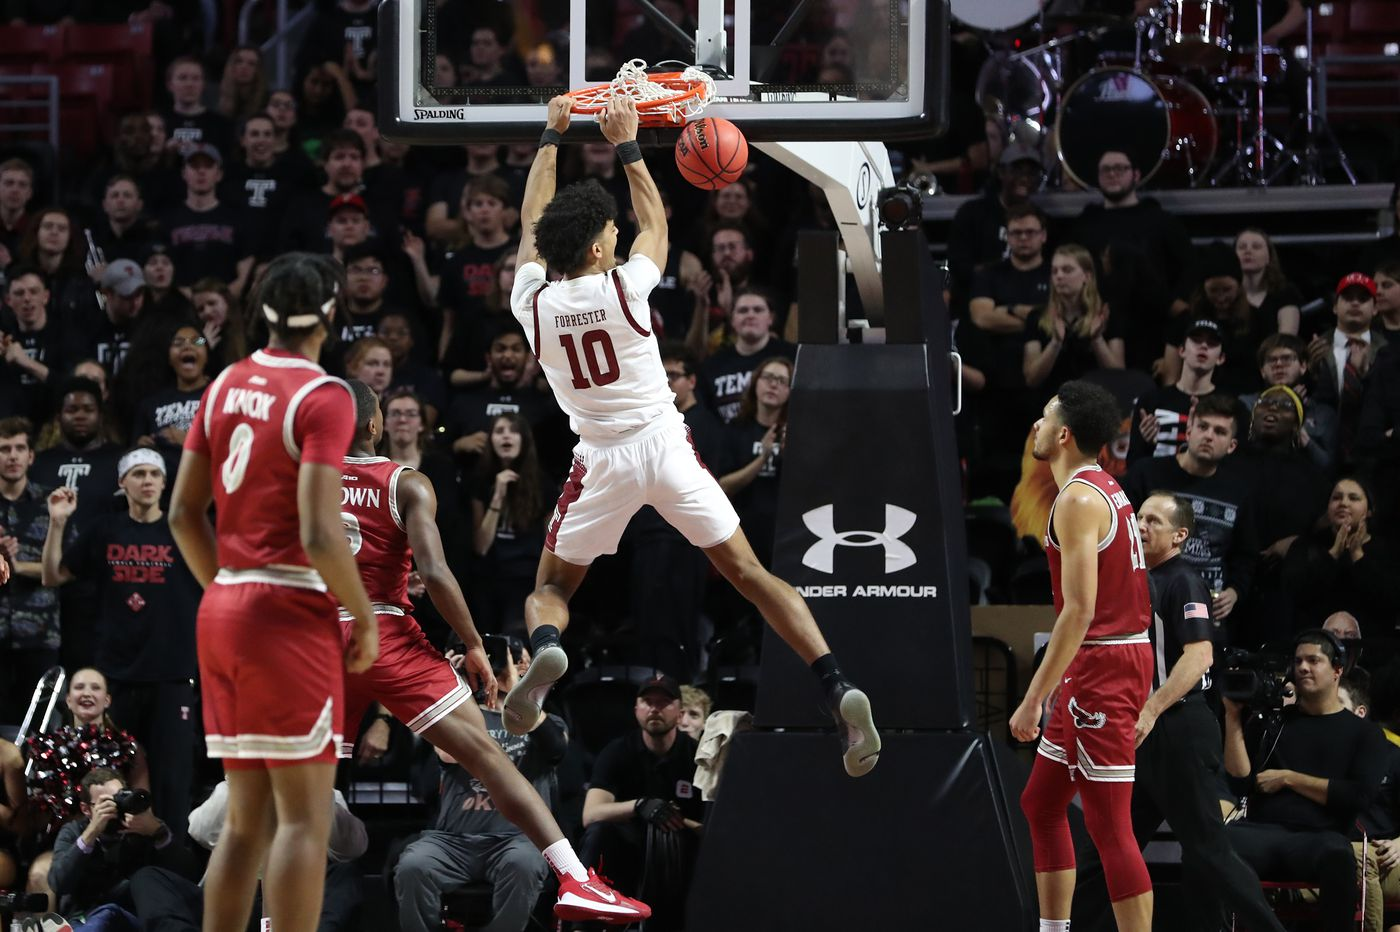 Temple's Jake Forrester isn't smiling now ... and that's a good thing | Mike Jensen